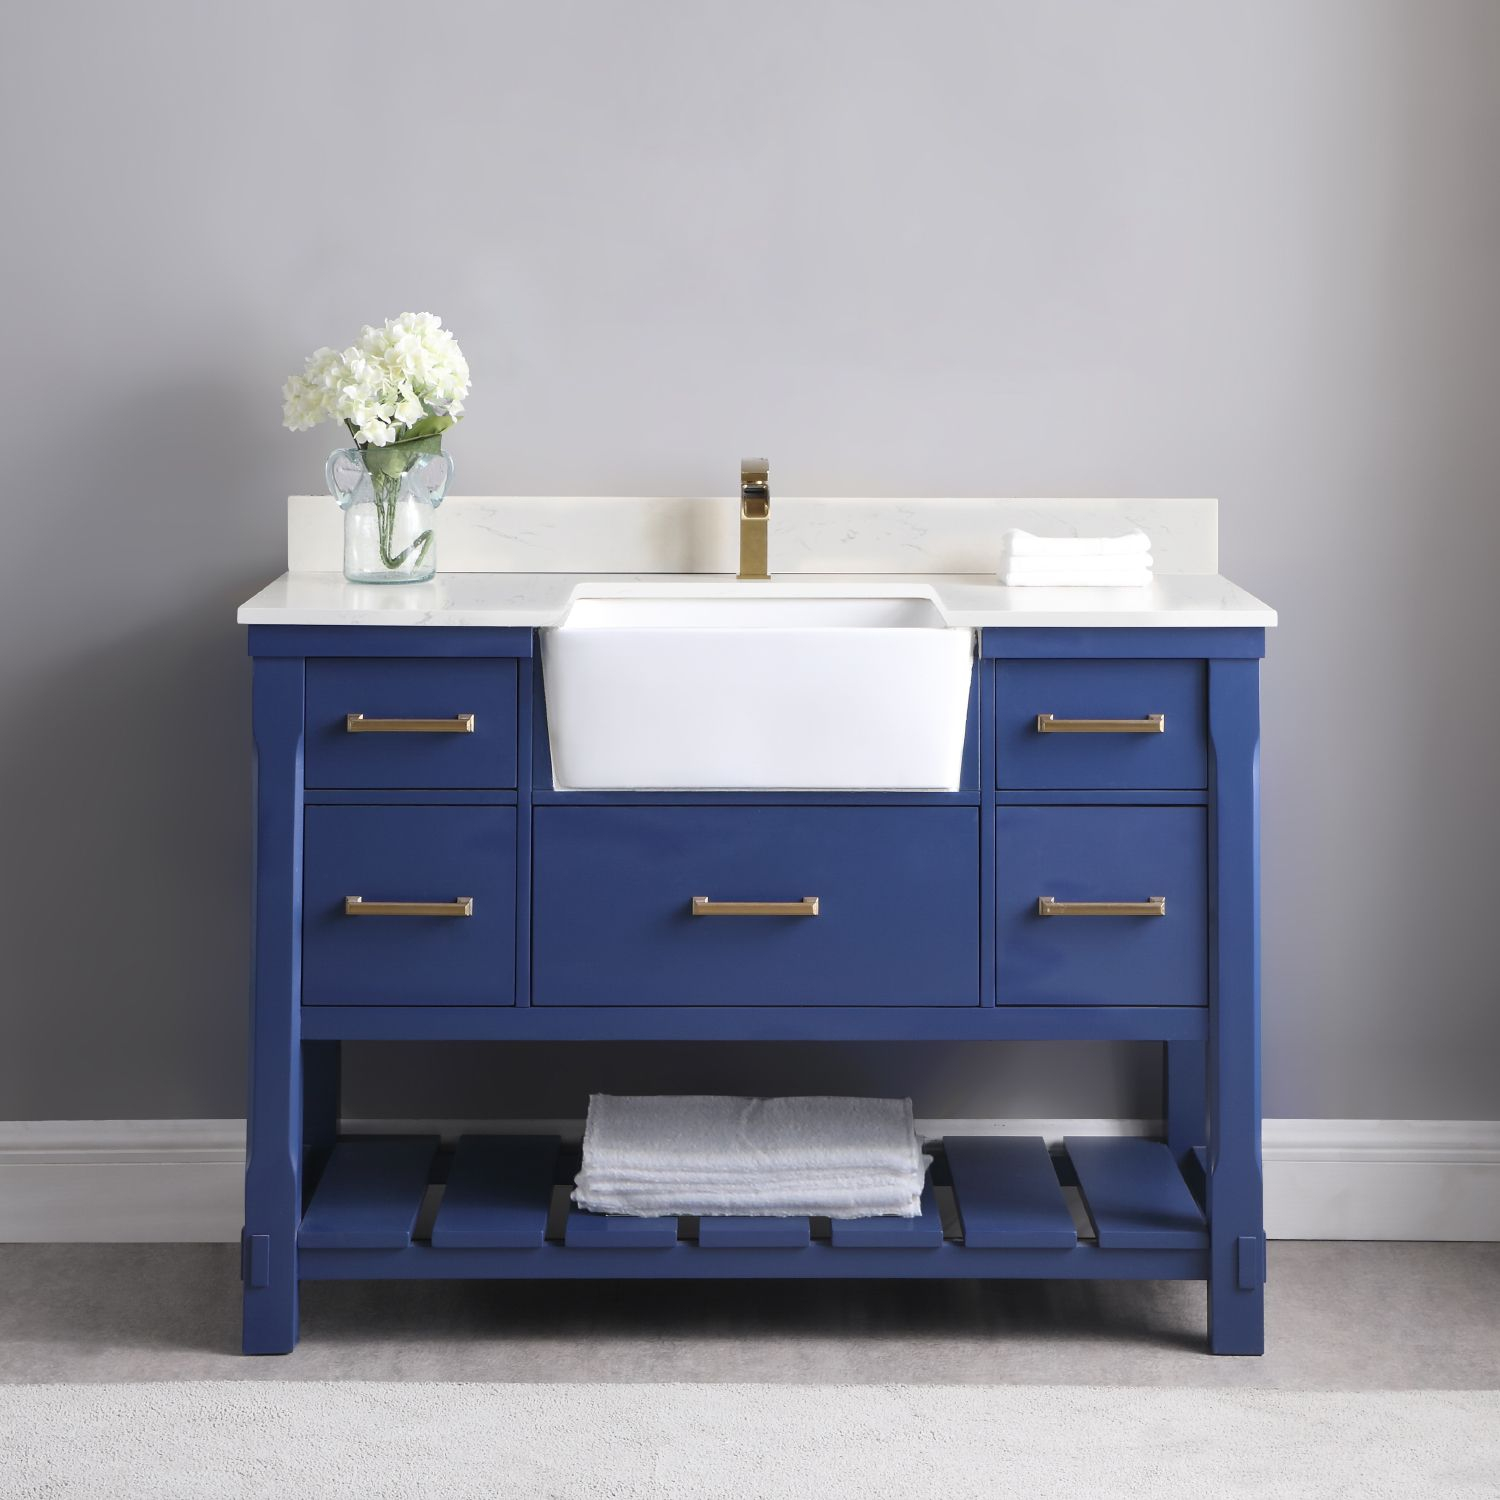 "Issac Edwards Collection 48"" Single Bathroom Vanity Set in Jewelry Blue and Composite Carrara White Stone Top with White Farmhouse Basin without Mirror"